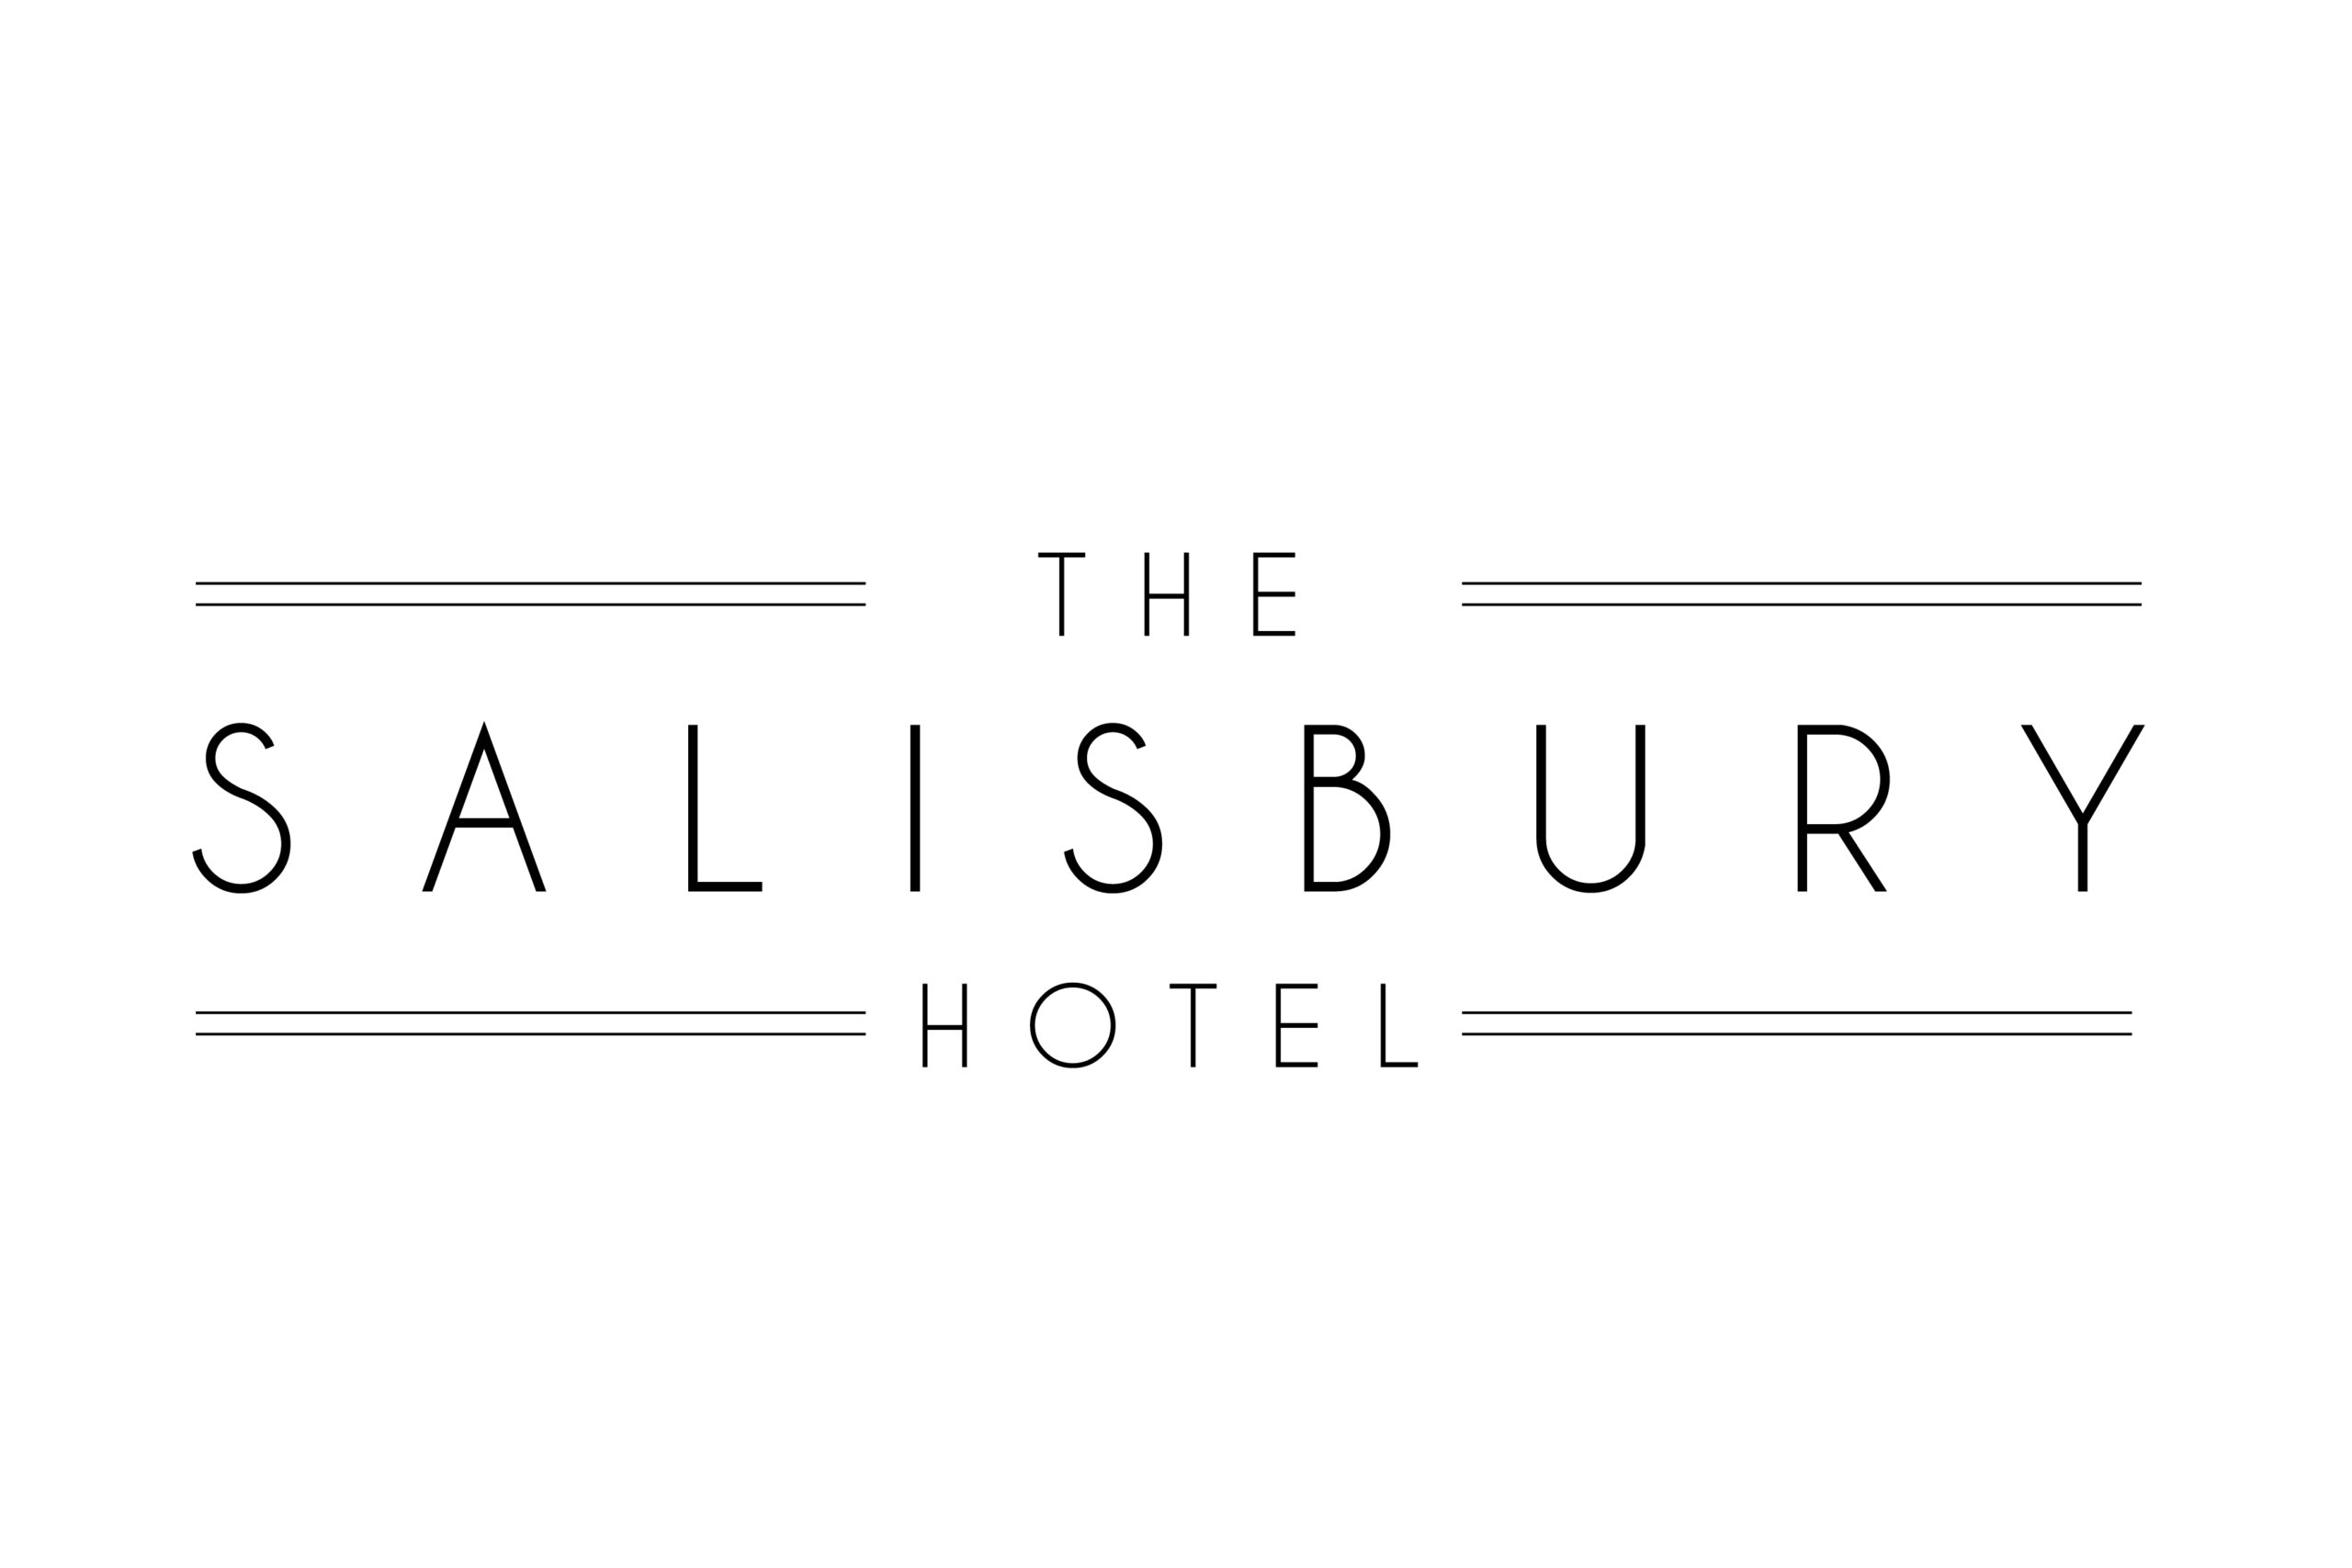 SALISBURYHOTEL_BLACK-scaled.jpg